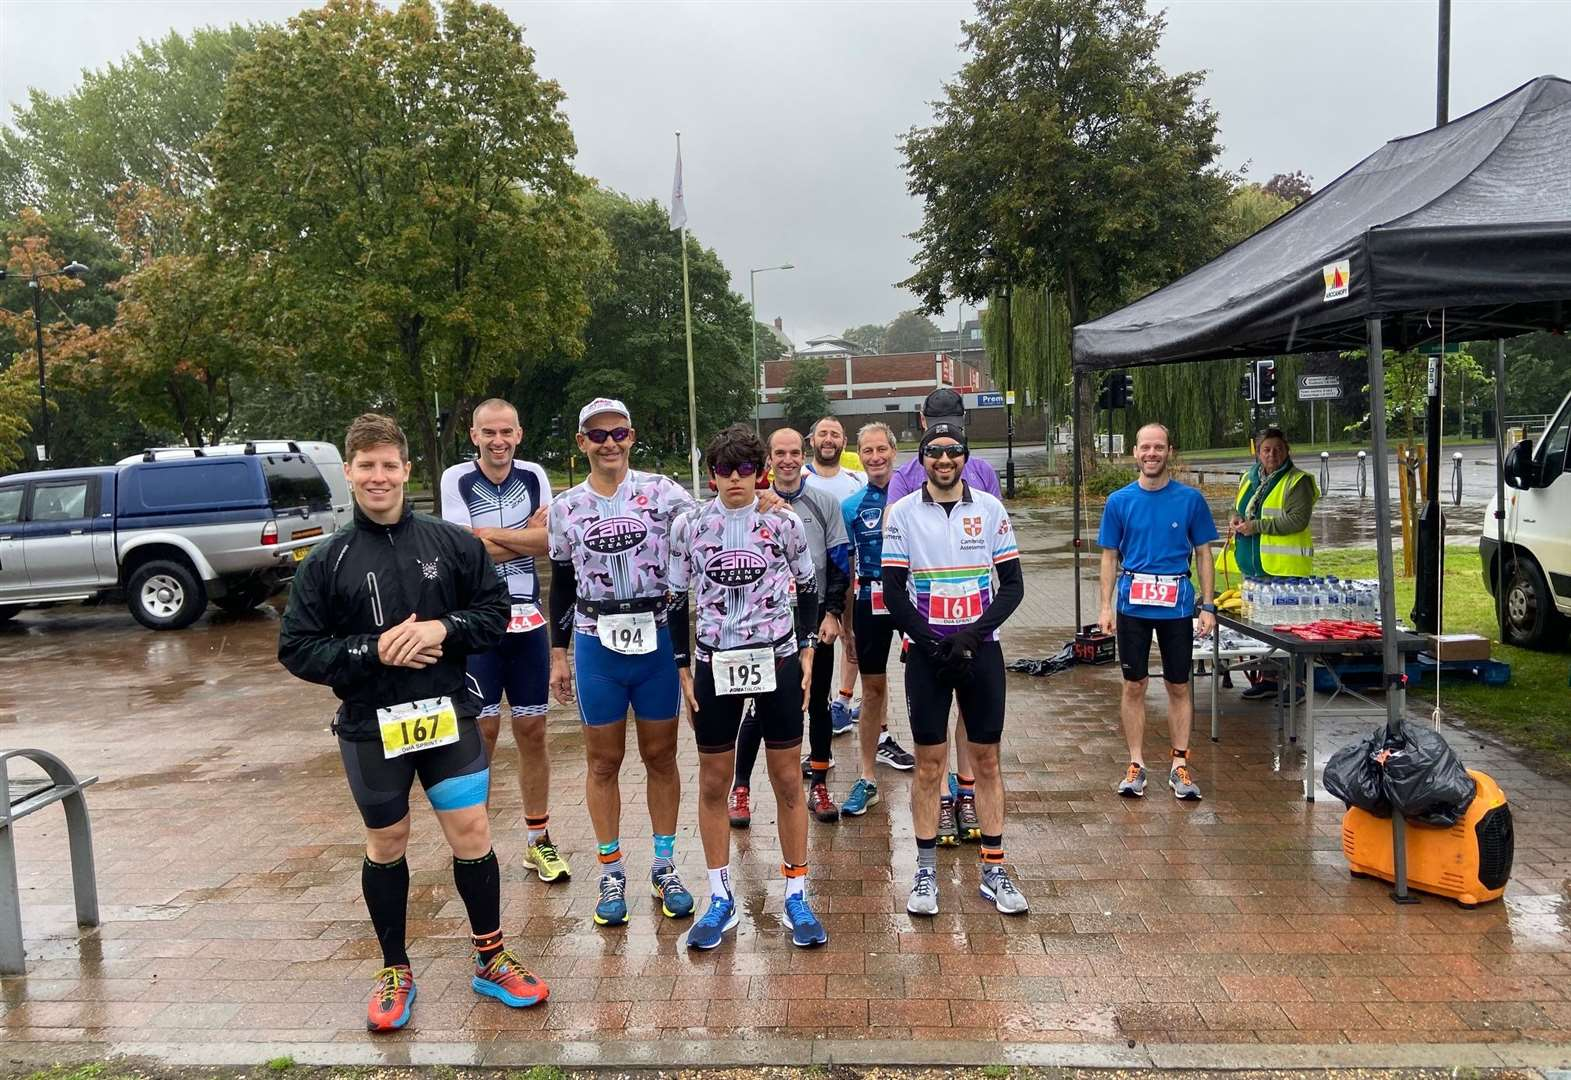 Triathletes keep on smiling despite deluge and floods